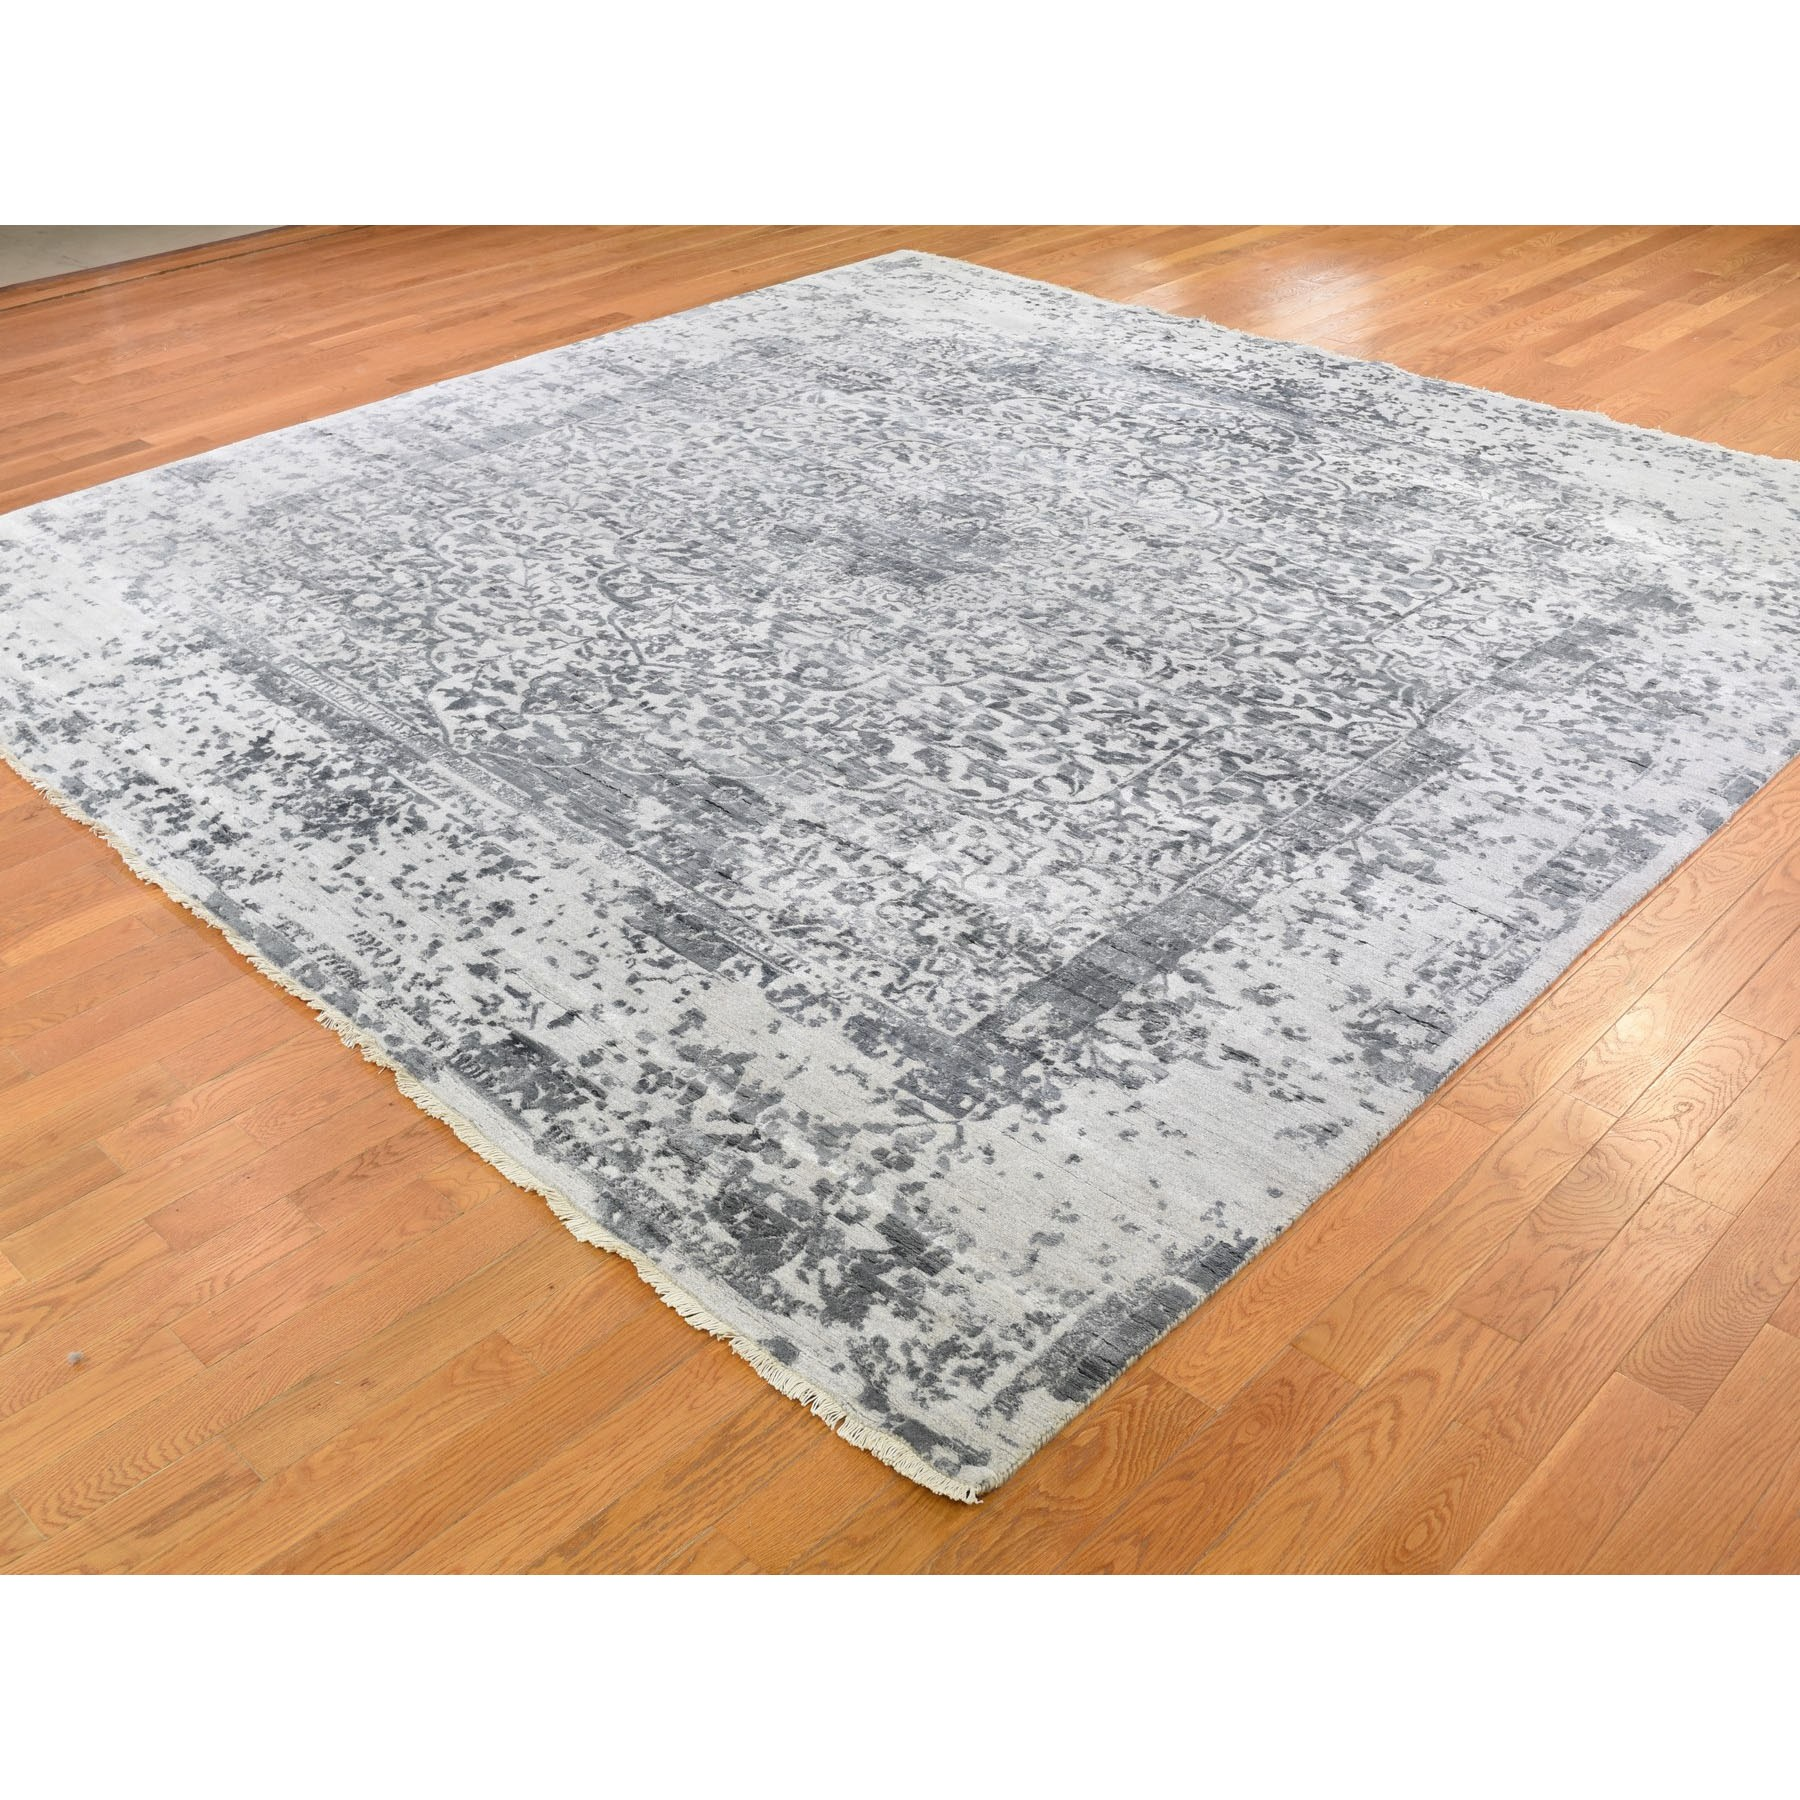 10'x10' Square Silver-Dark Gray Erased Persian Design Wool and Pure Silk Hand Knotted Oriental Rug